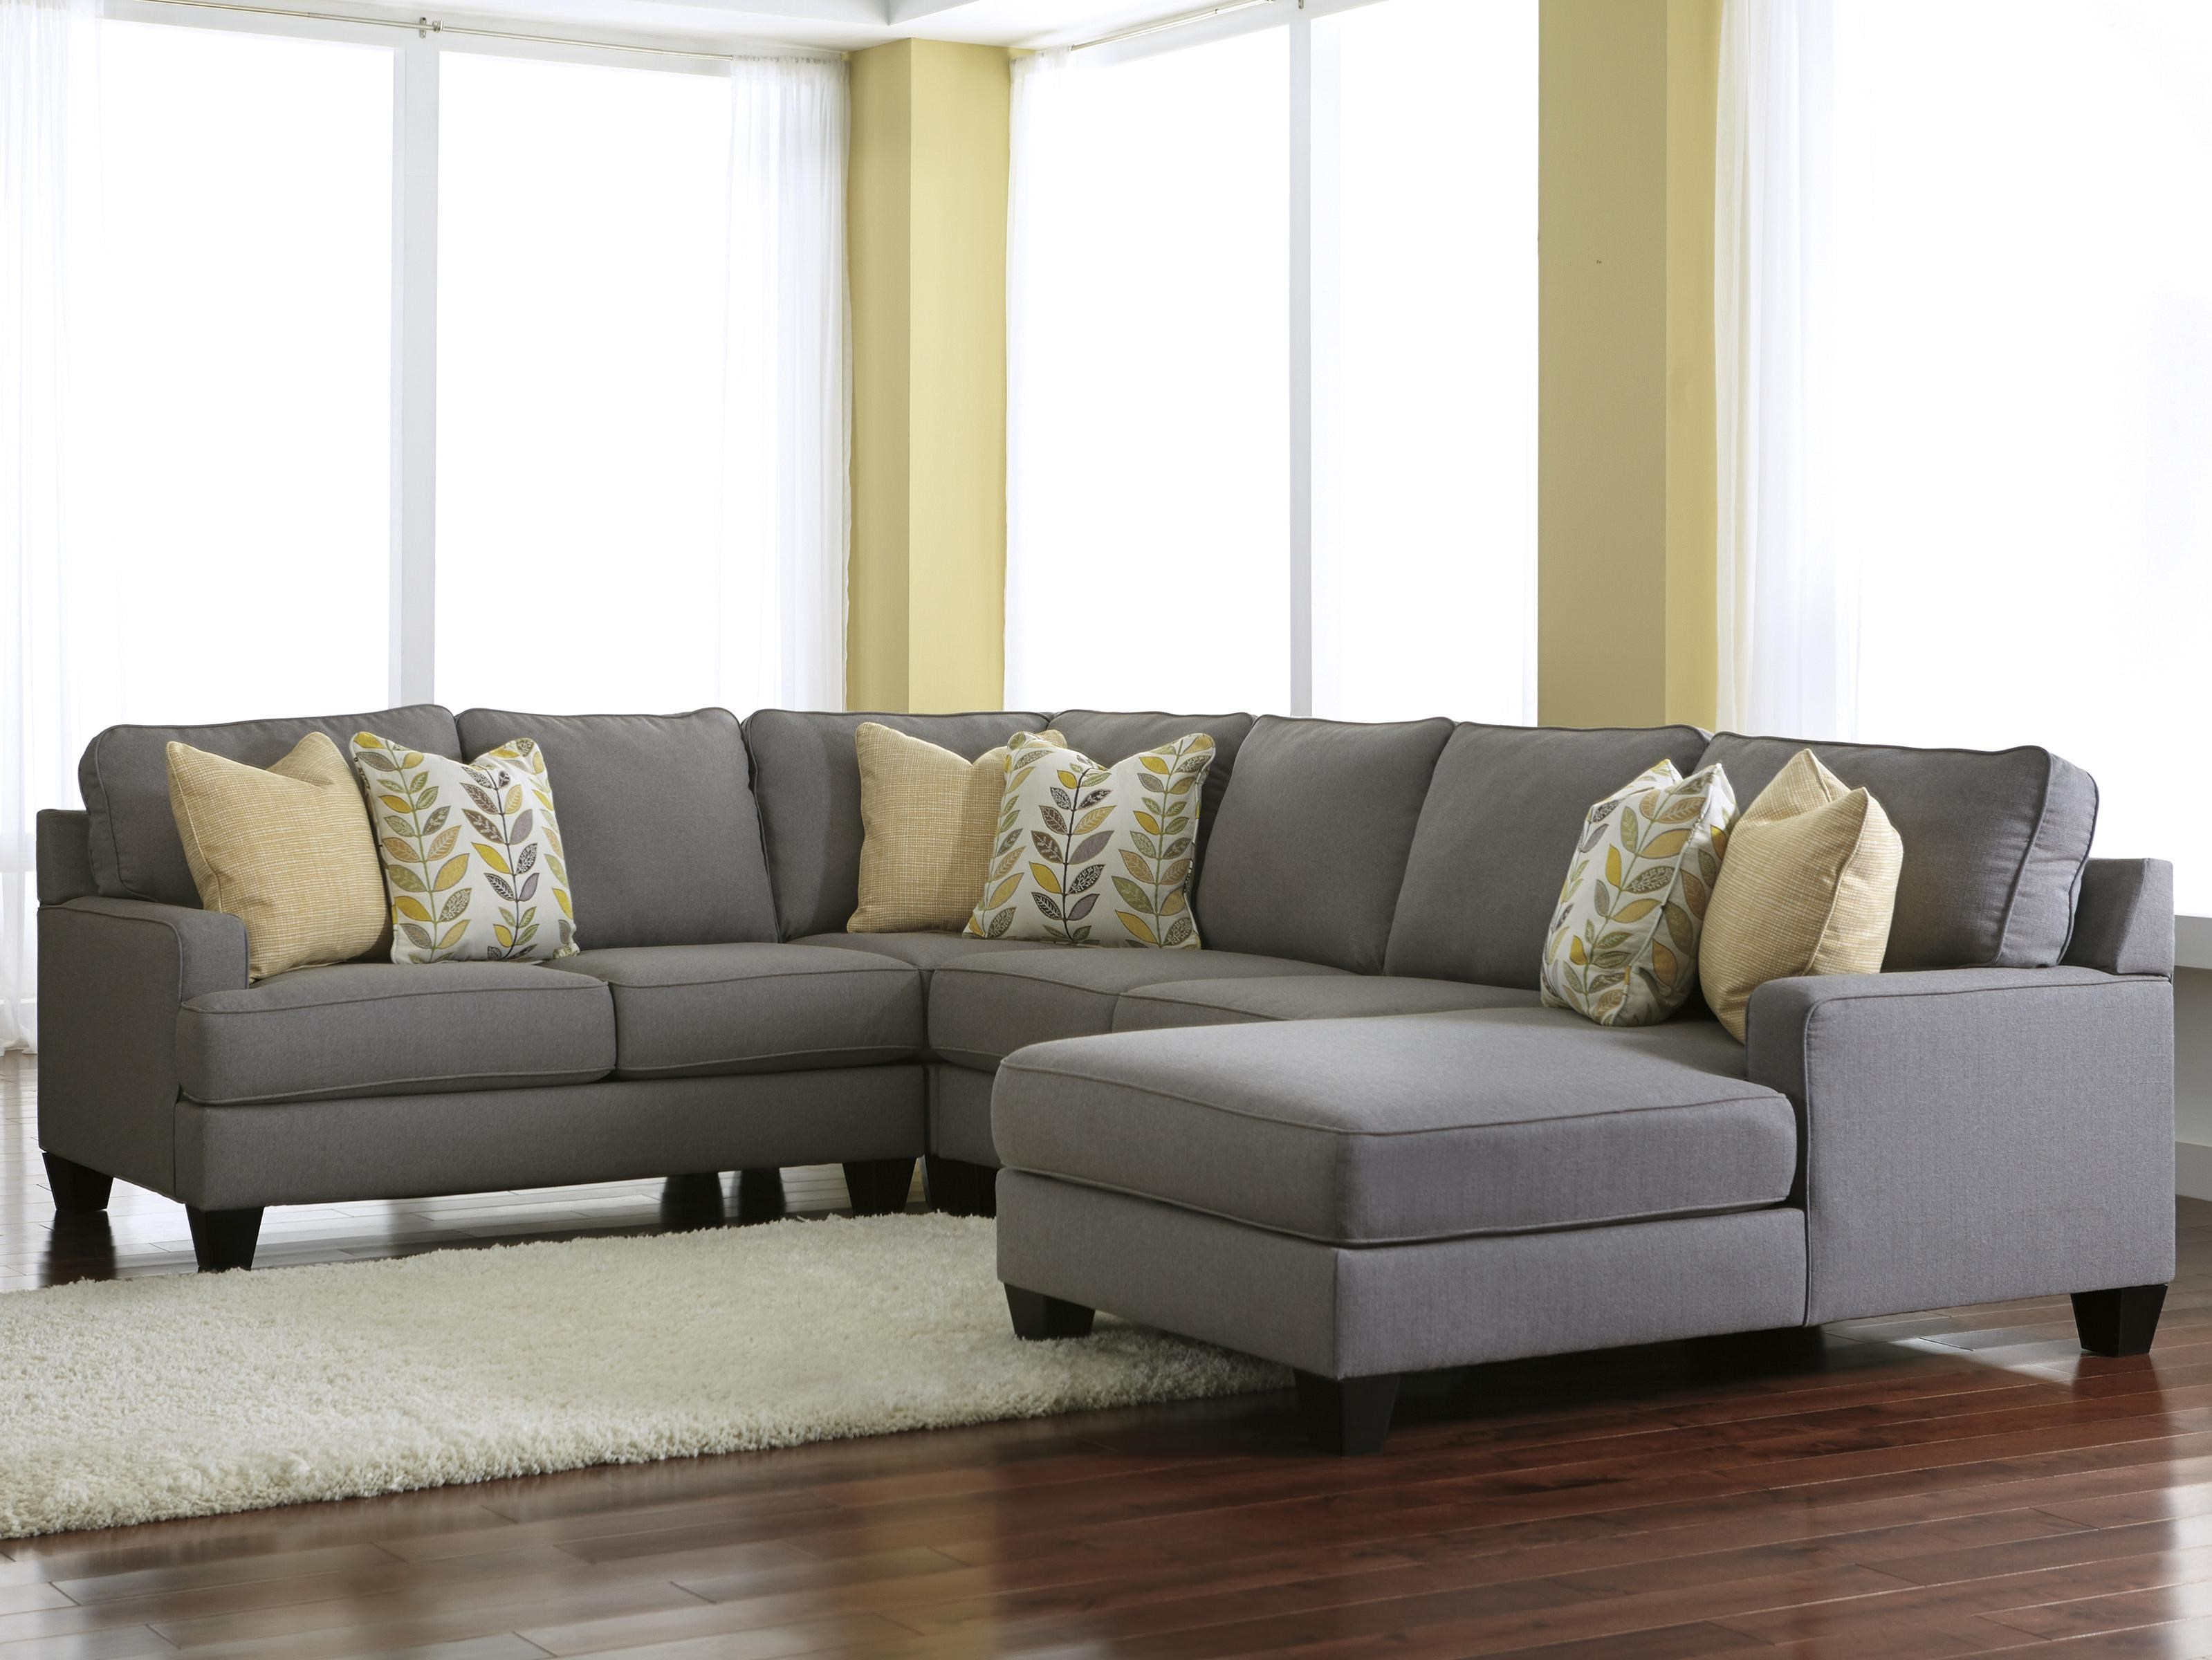 Chamberly   Alloy Modern 4 Piece Sectional Sofa With Right Chaise U0026  Reversible Seat Cushions By Signature Design By Ashley